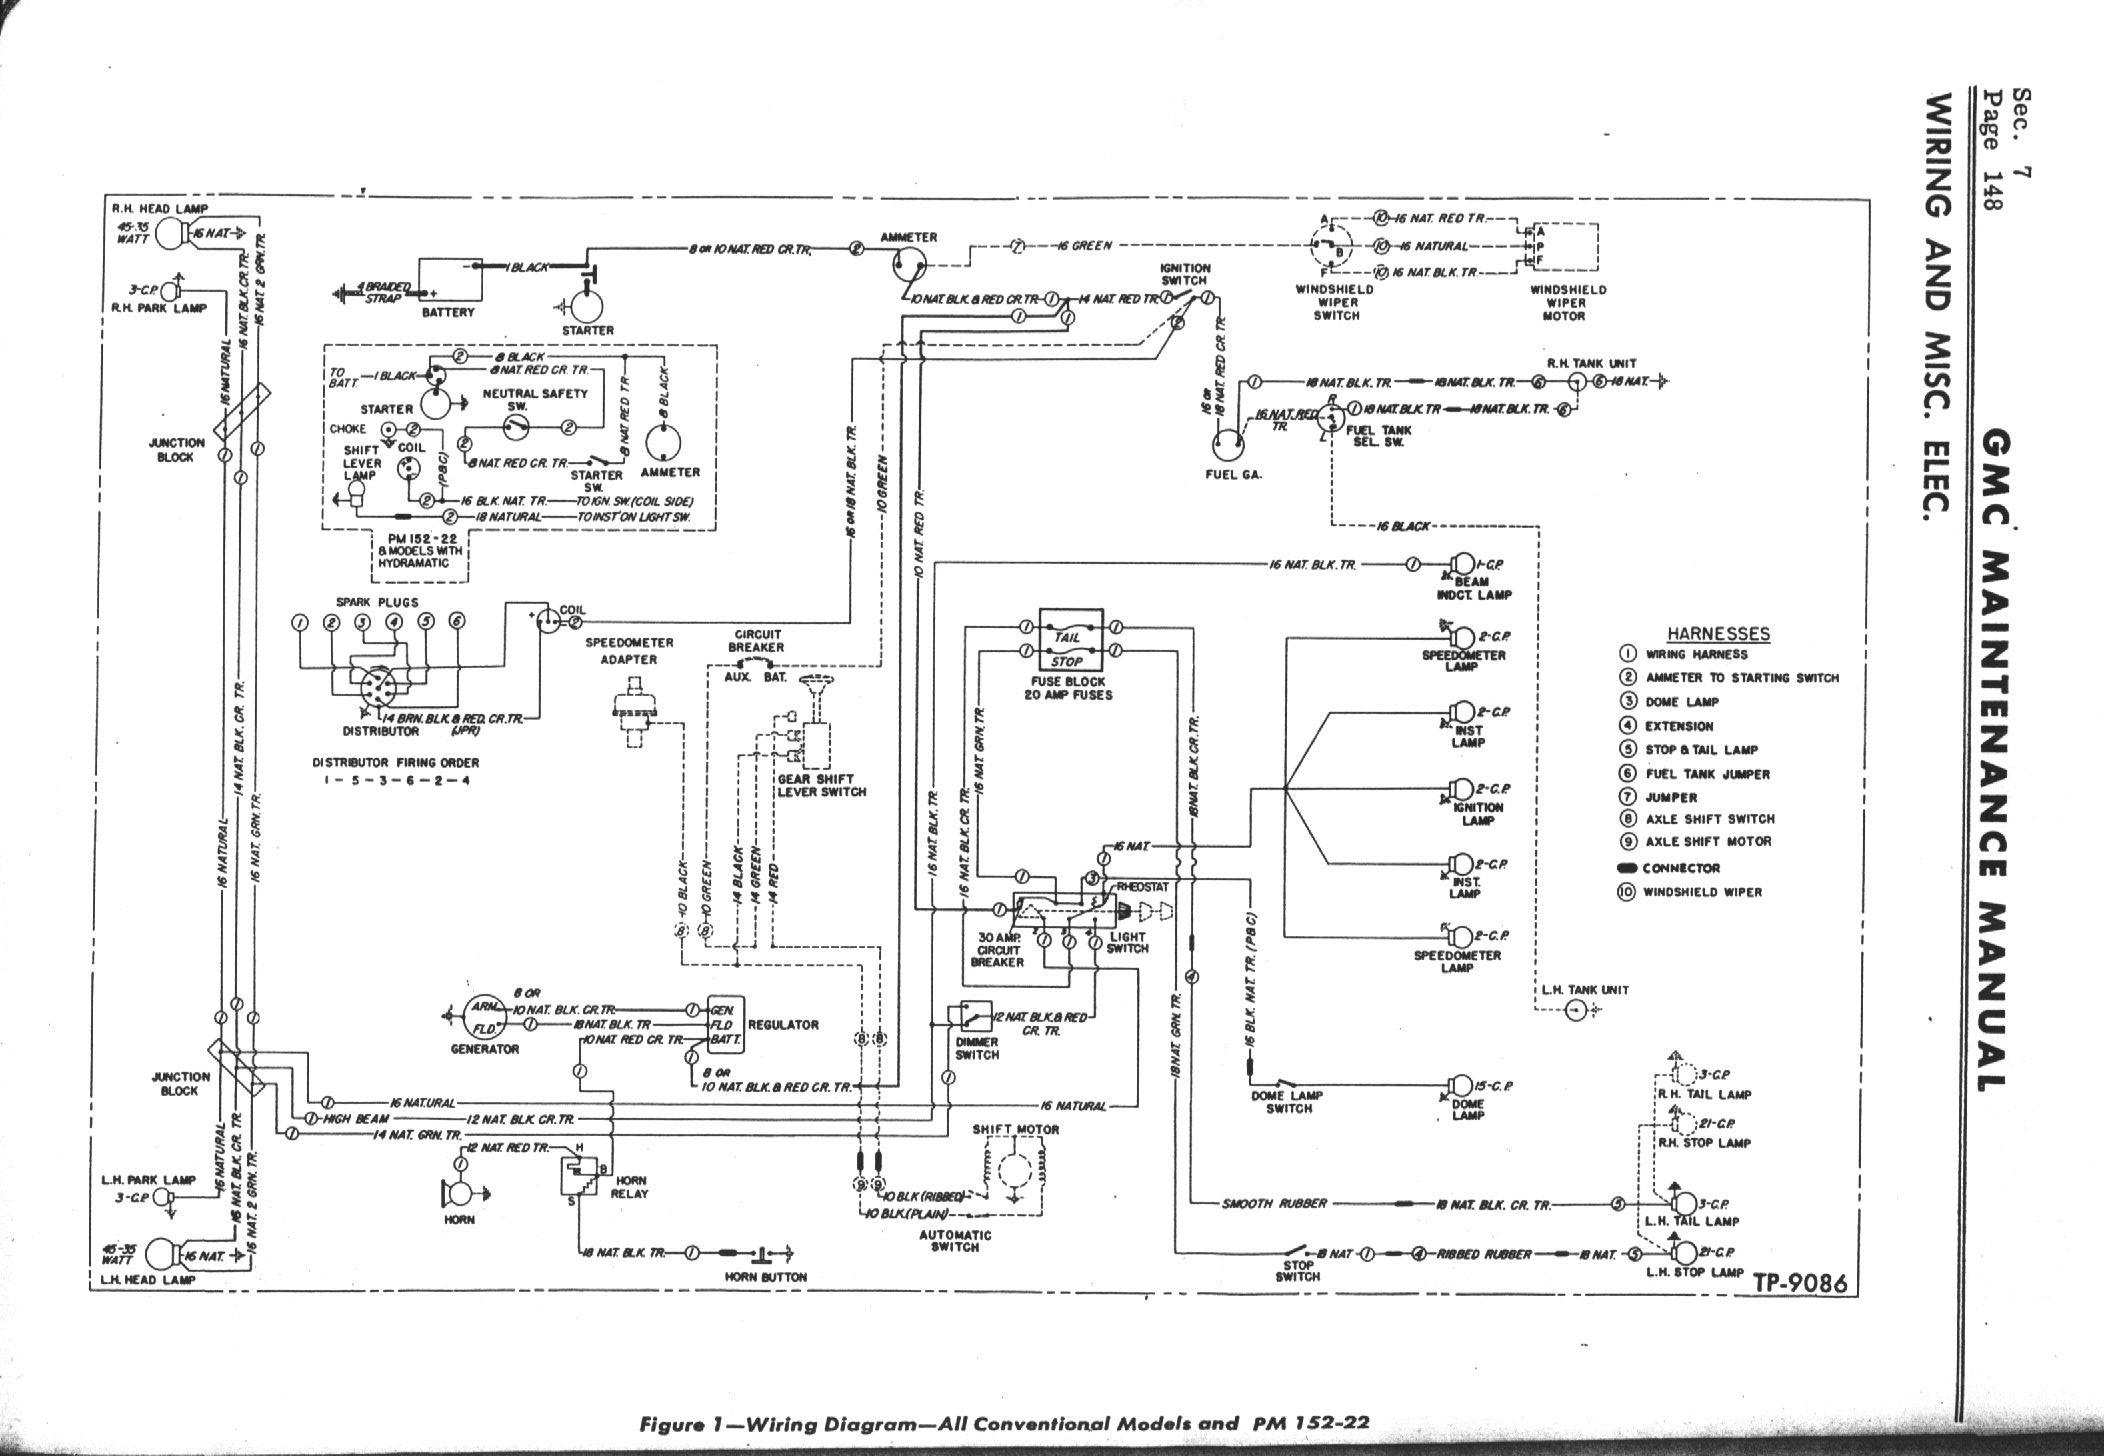 1984 Gmc Sierra Wiring Diagram Library 1989 Dodge Shadow Truck Free Engine Image For User Diagrams 1956